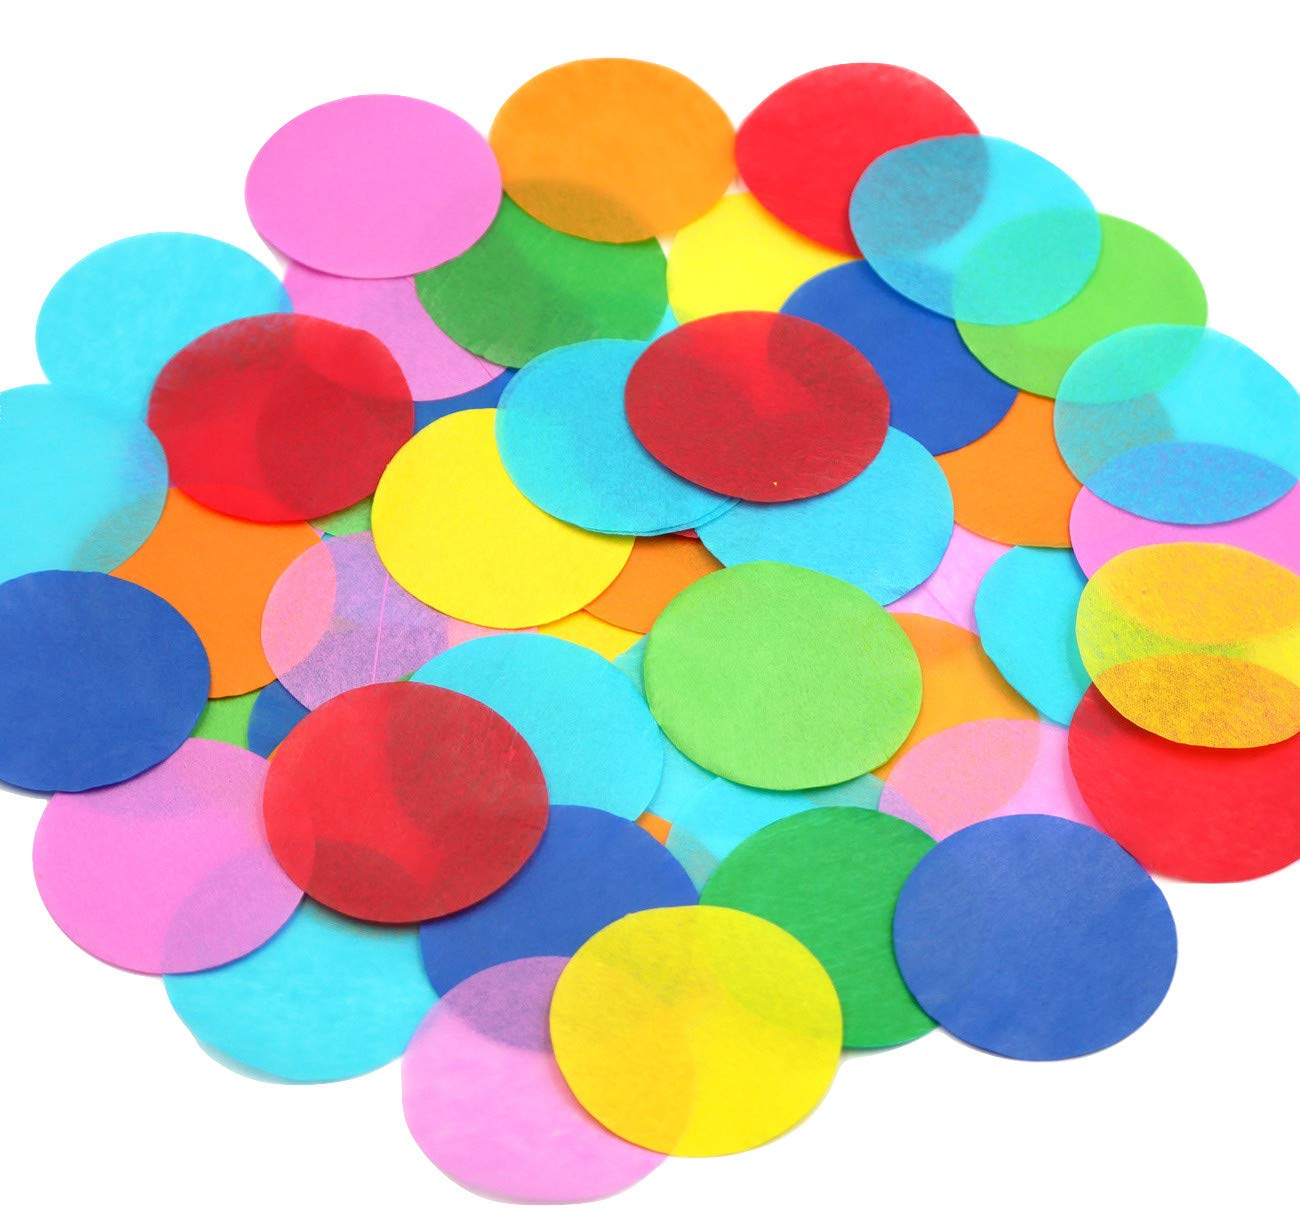 Ultimate Confetti 2'' Multicolor Biodegradable Tissue Circles-Great for Parties, Decorations, Kids Birthdays, Arts and Crafts! by Ultimate Confetti